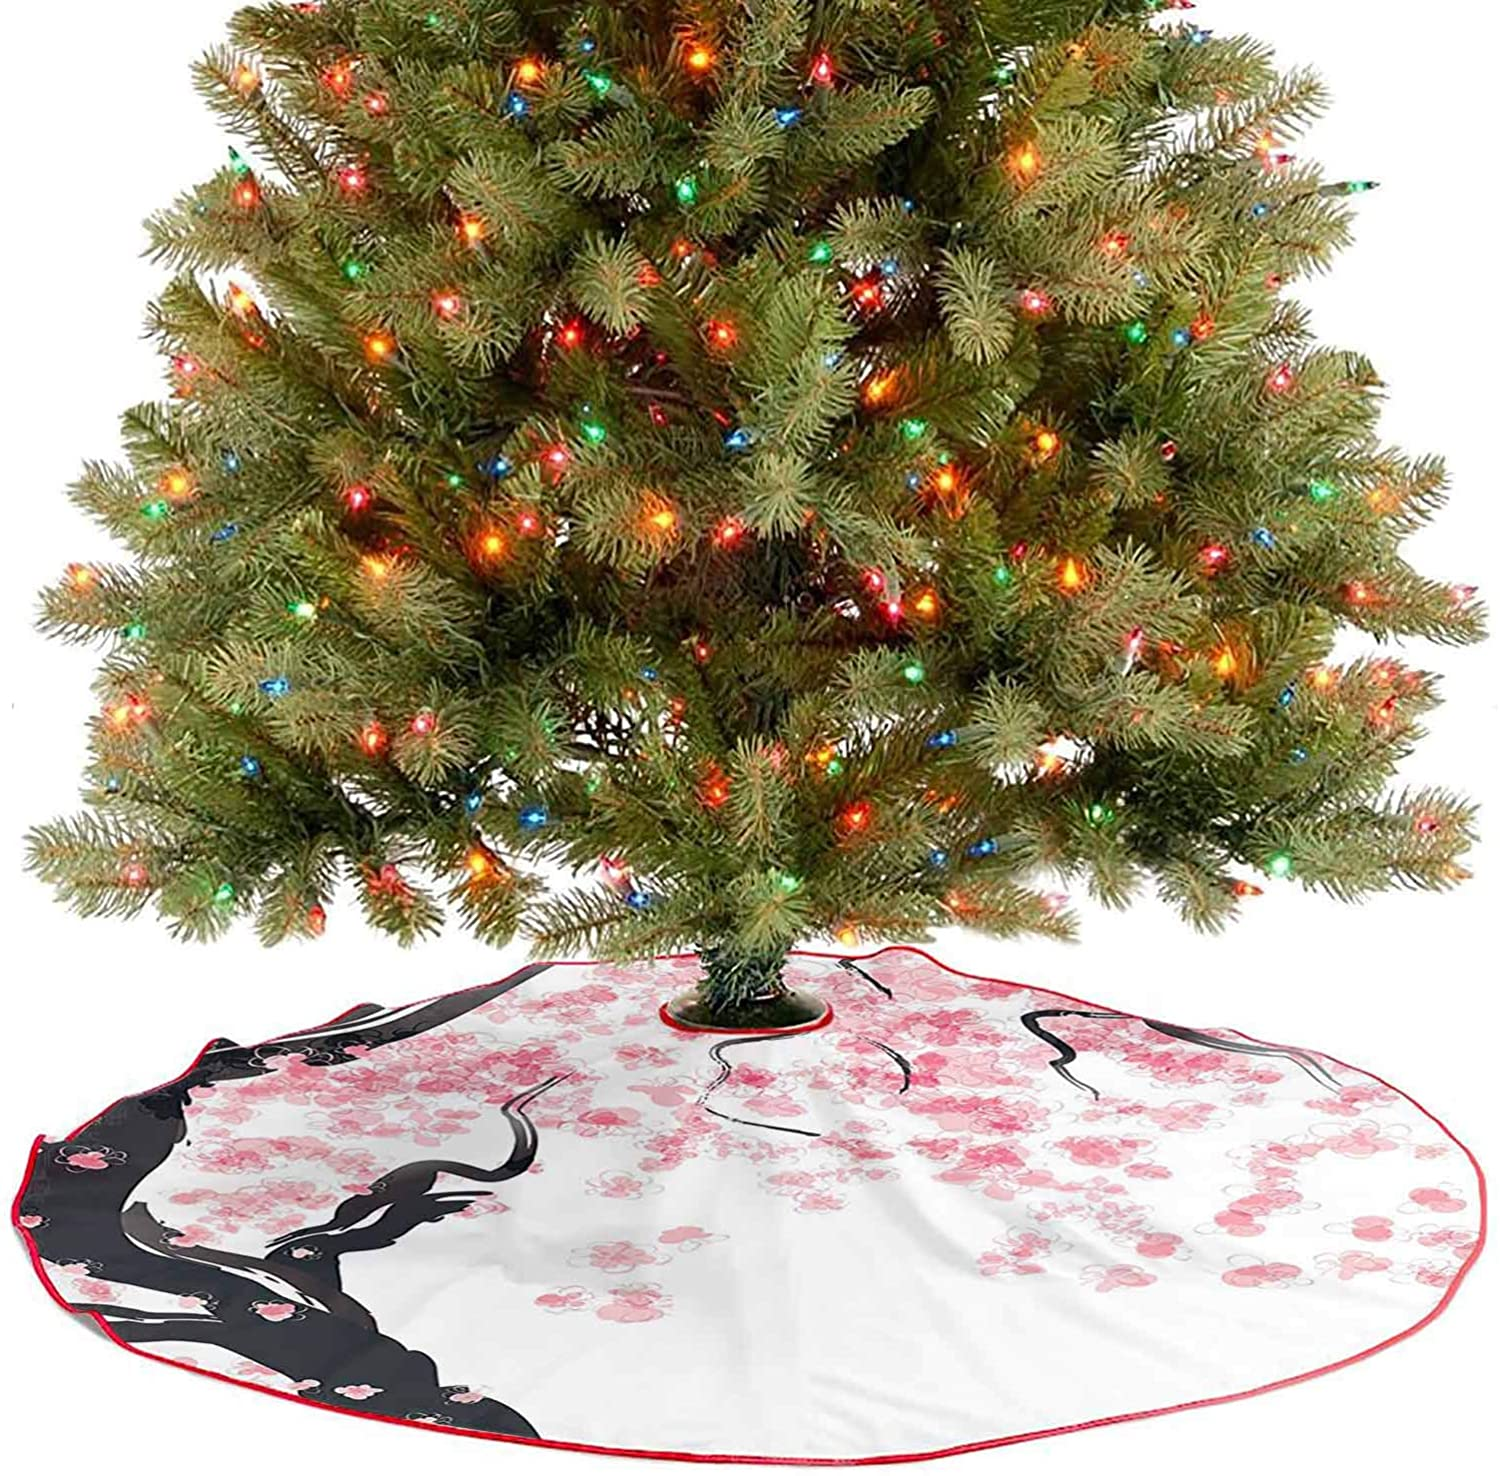 Adorise Tree Skirt Decor Japanese Cherry Tree Blossom in Watercolor Painting Effect Oriental Stylized Art Blac Decoration Ornaments for Xmas New Year Holiday Party Home - 36 Inch